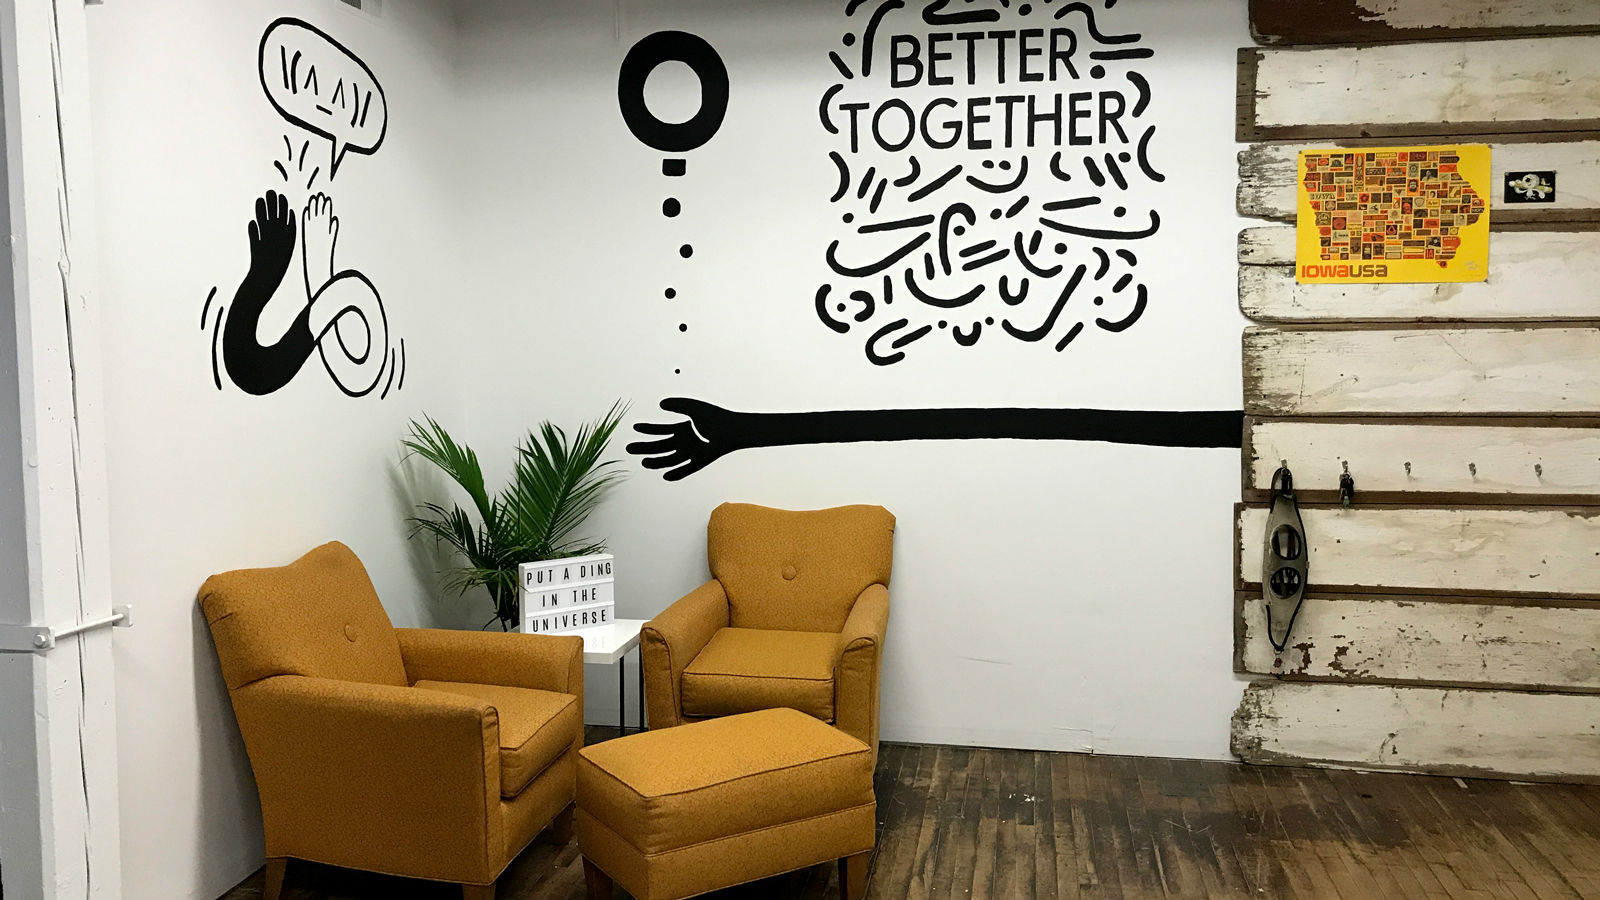 19. From the walls of Yoimono, a coworking space for creatives in Iowa